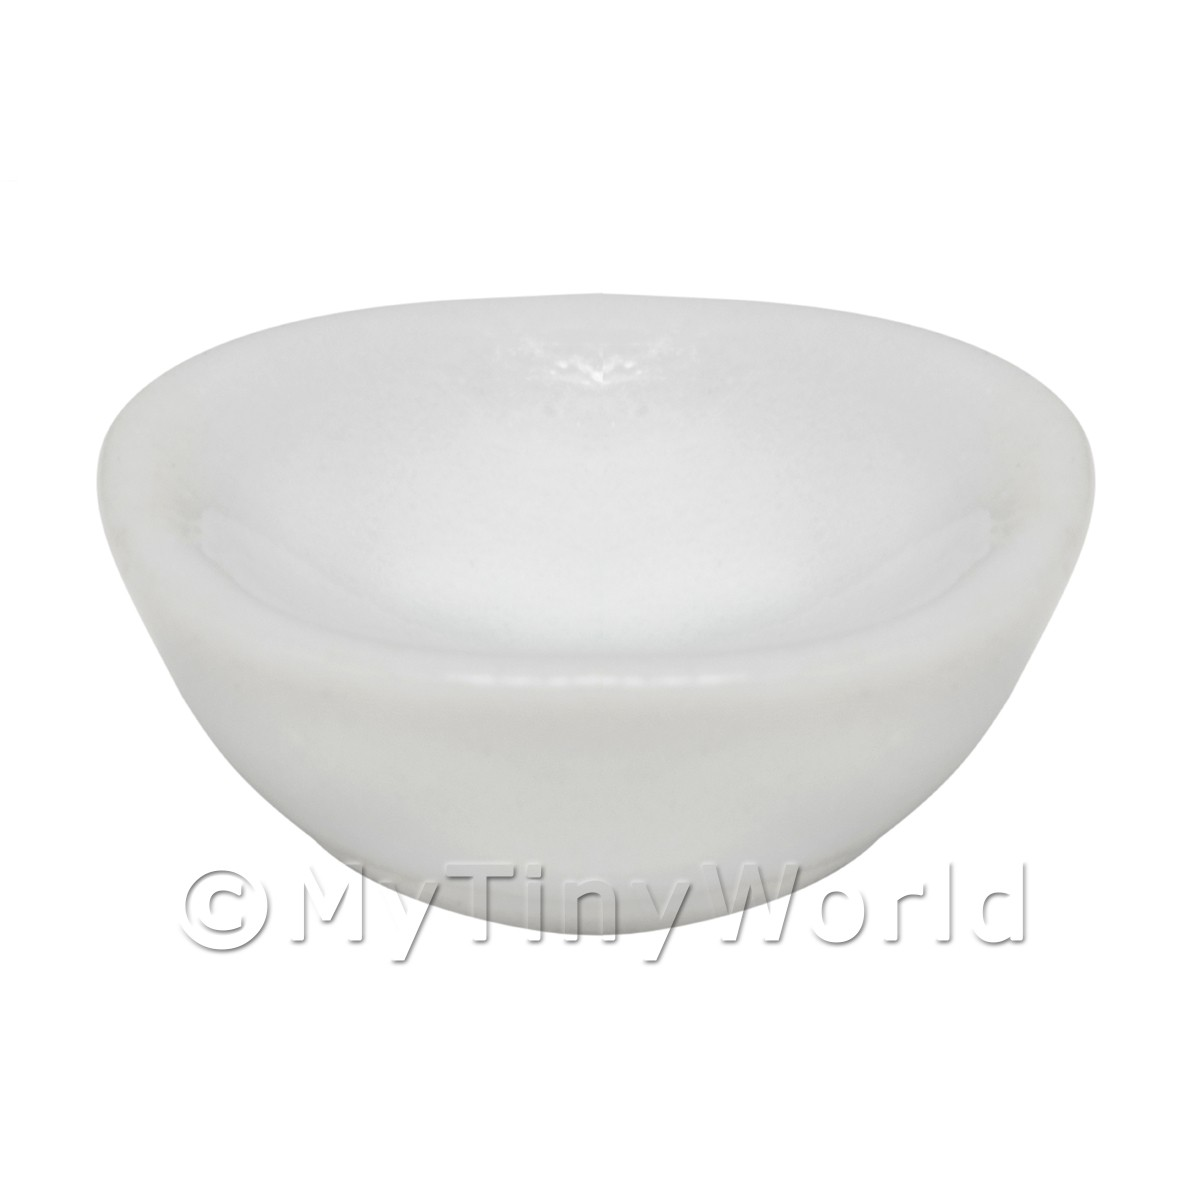 15mm Dolls House Miniature White Glazed Ceramic Bowl